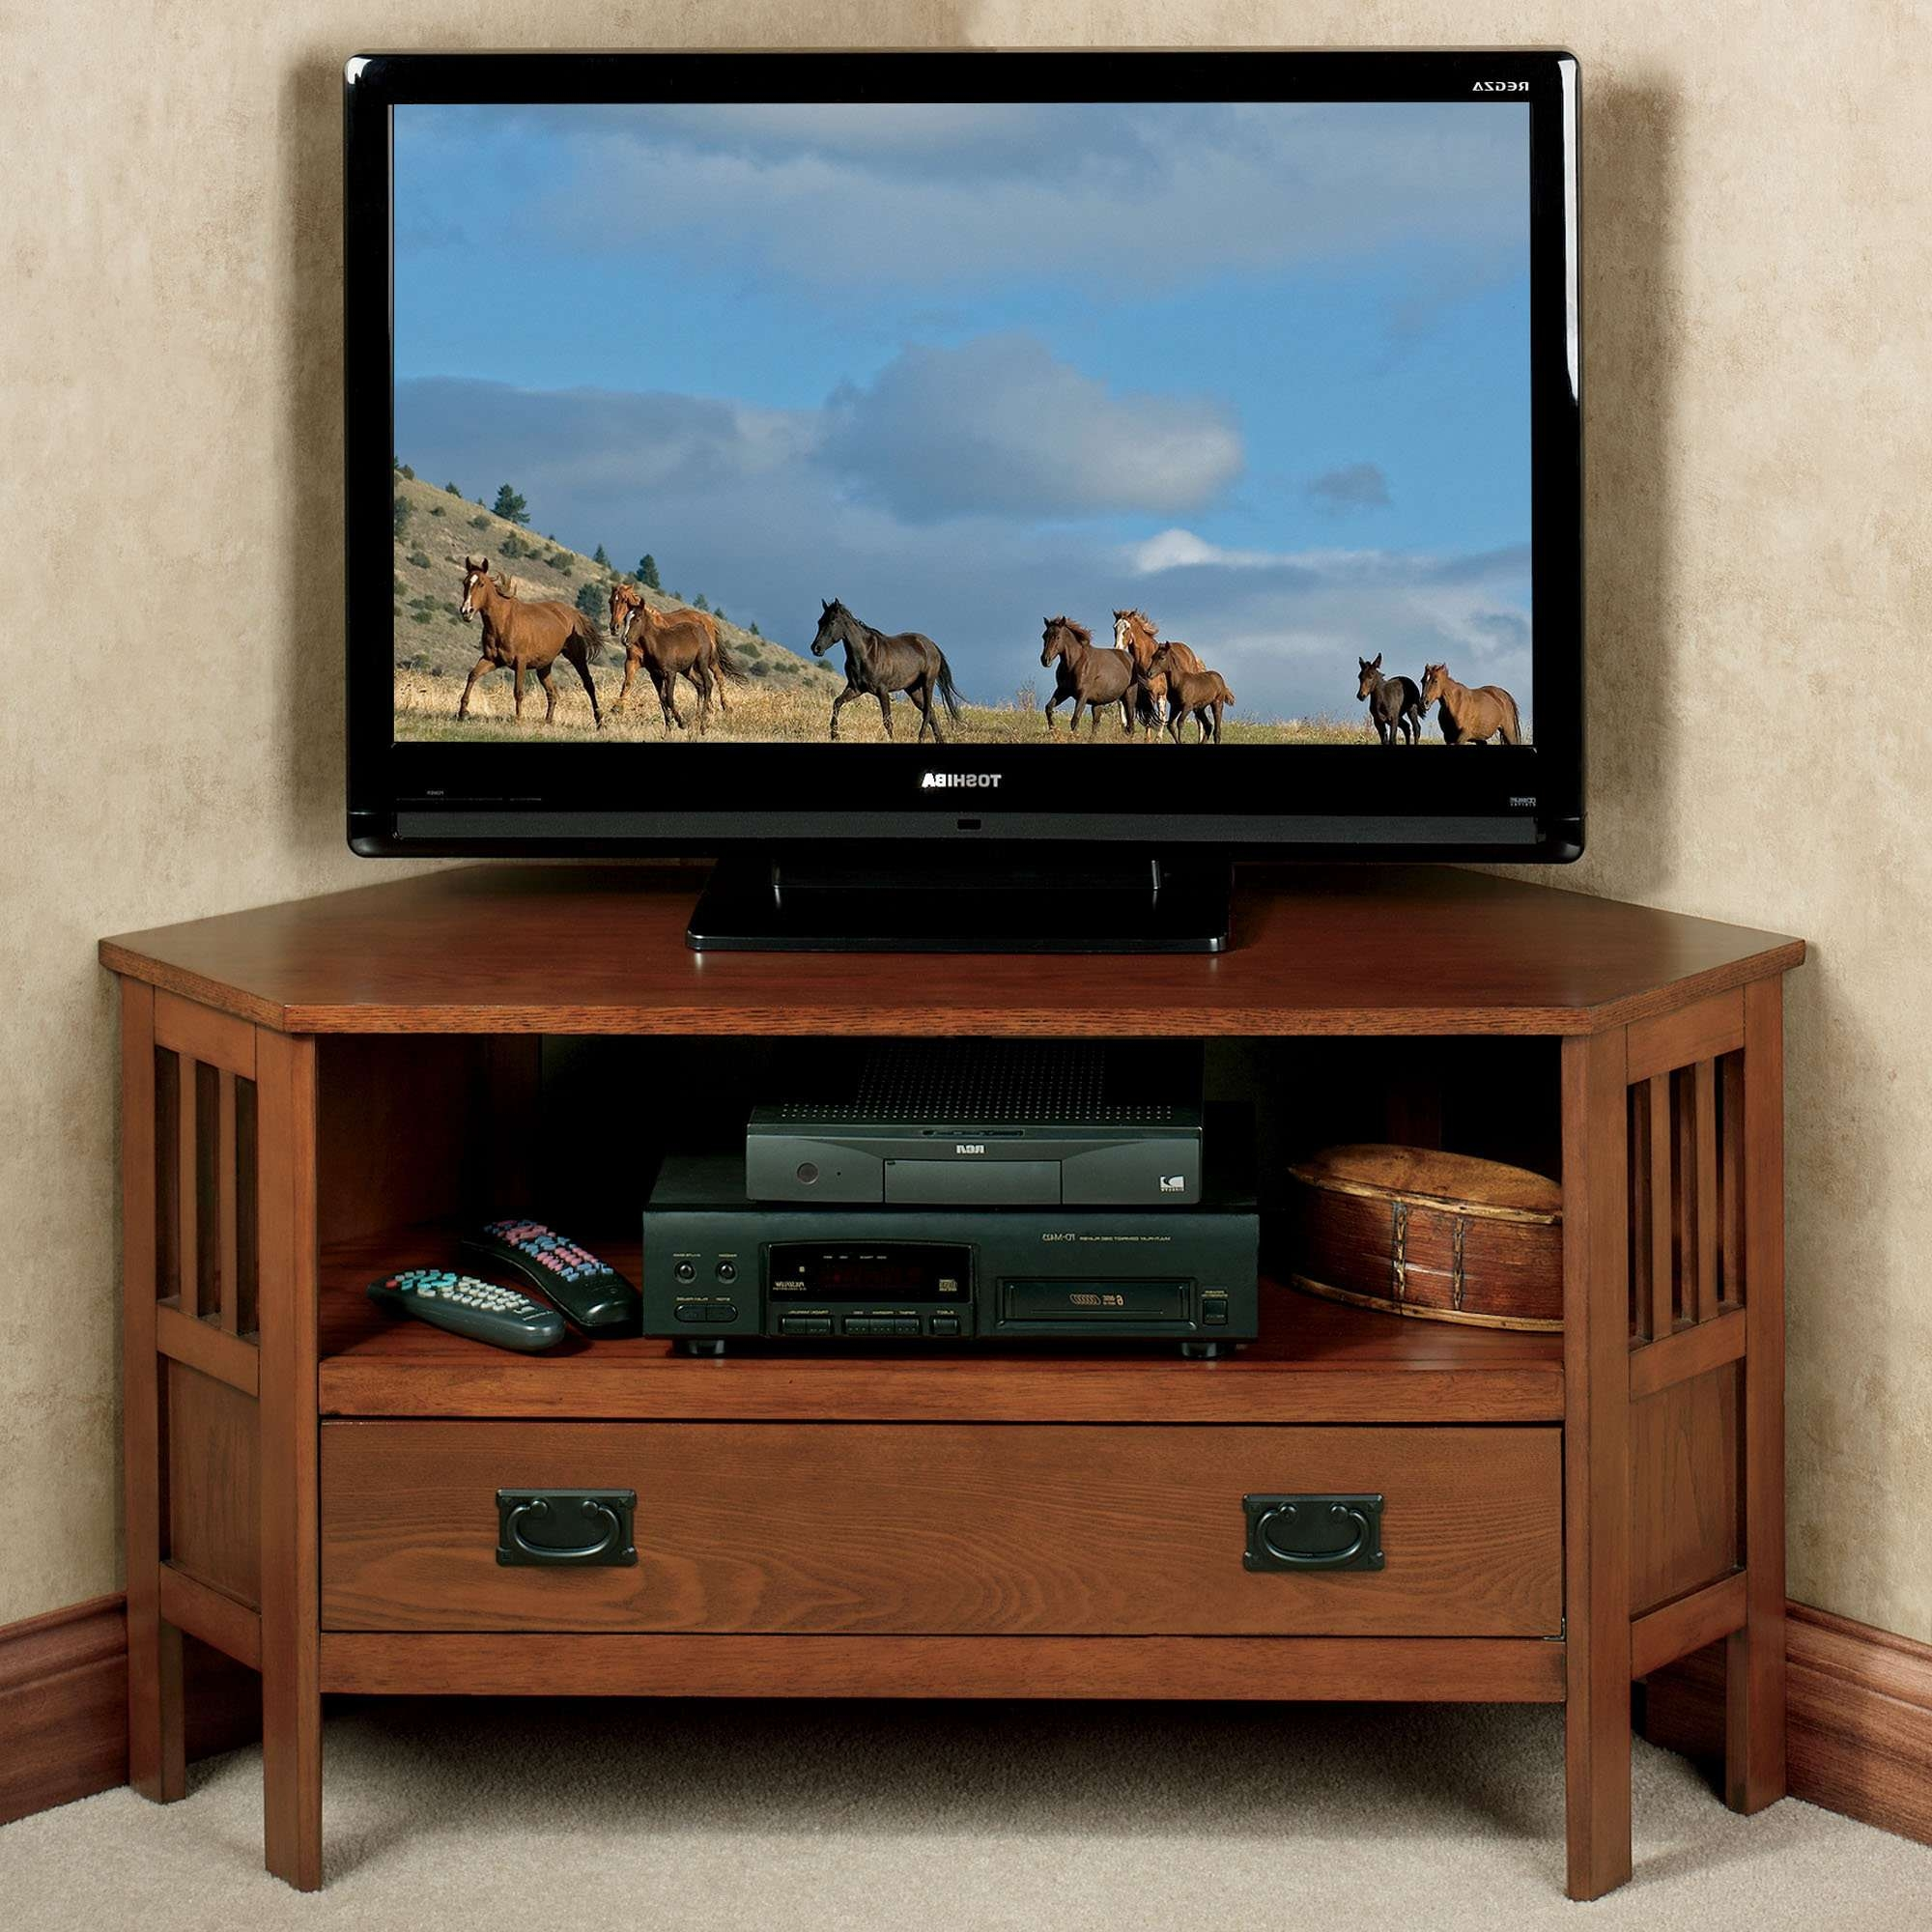 Fresh Corner Tv Stand For 55 Inch Flat Screen 78 With Additional Pertaining To Corner 55 Inch Tv Stands (View 7 of 15)